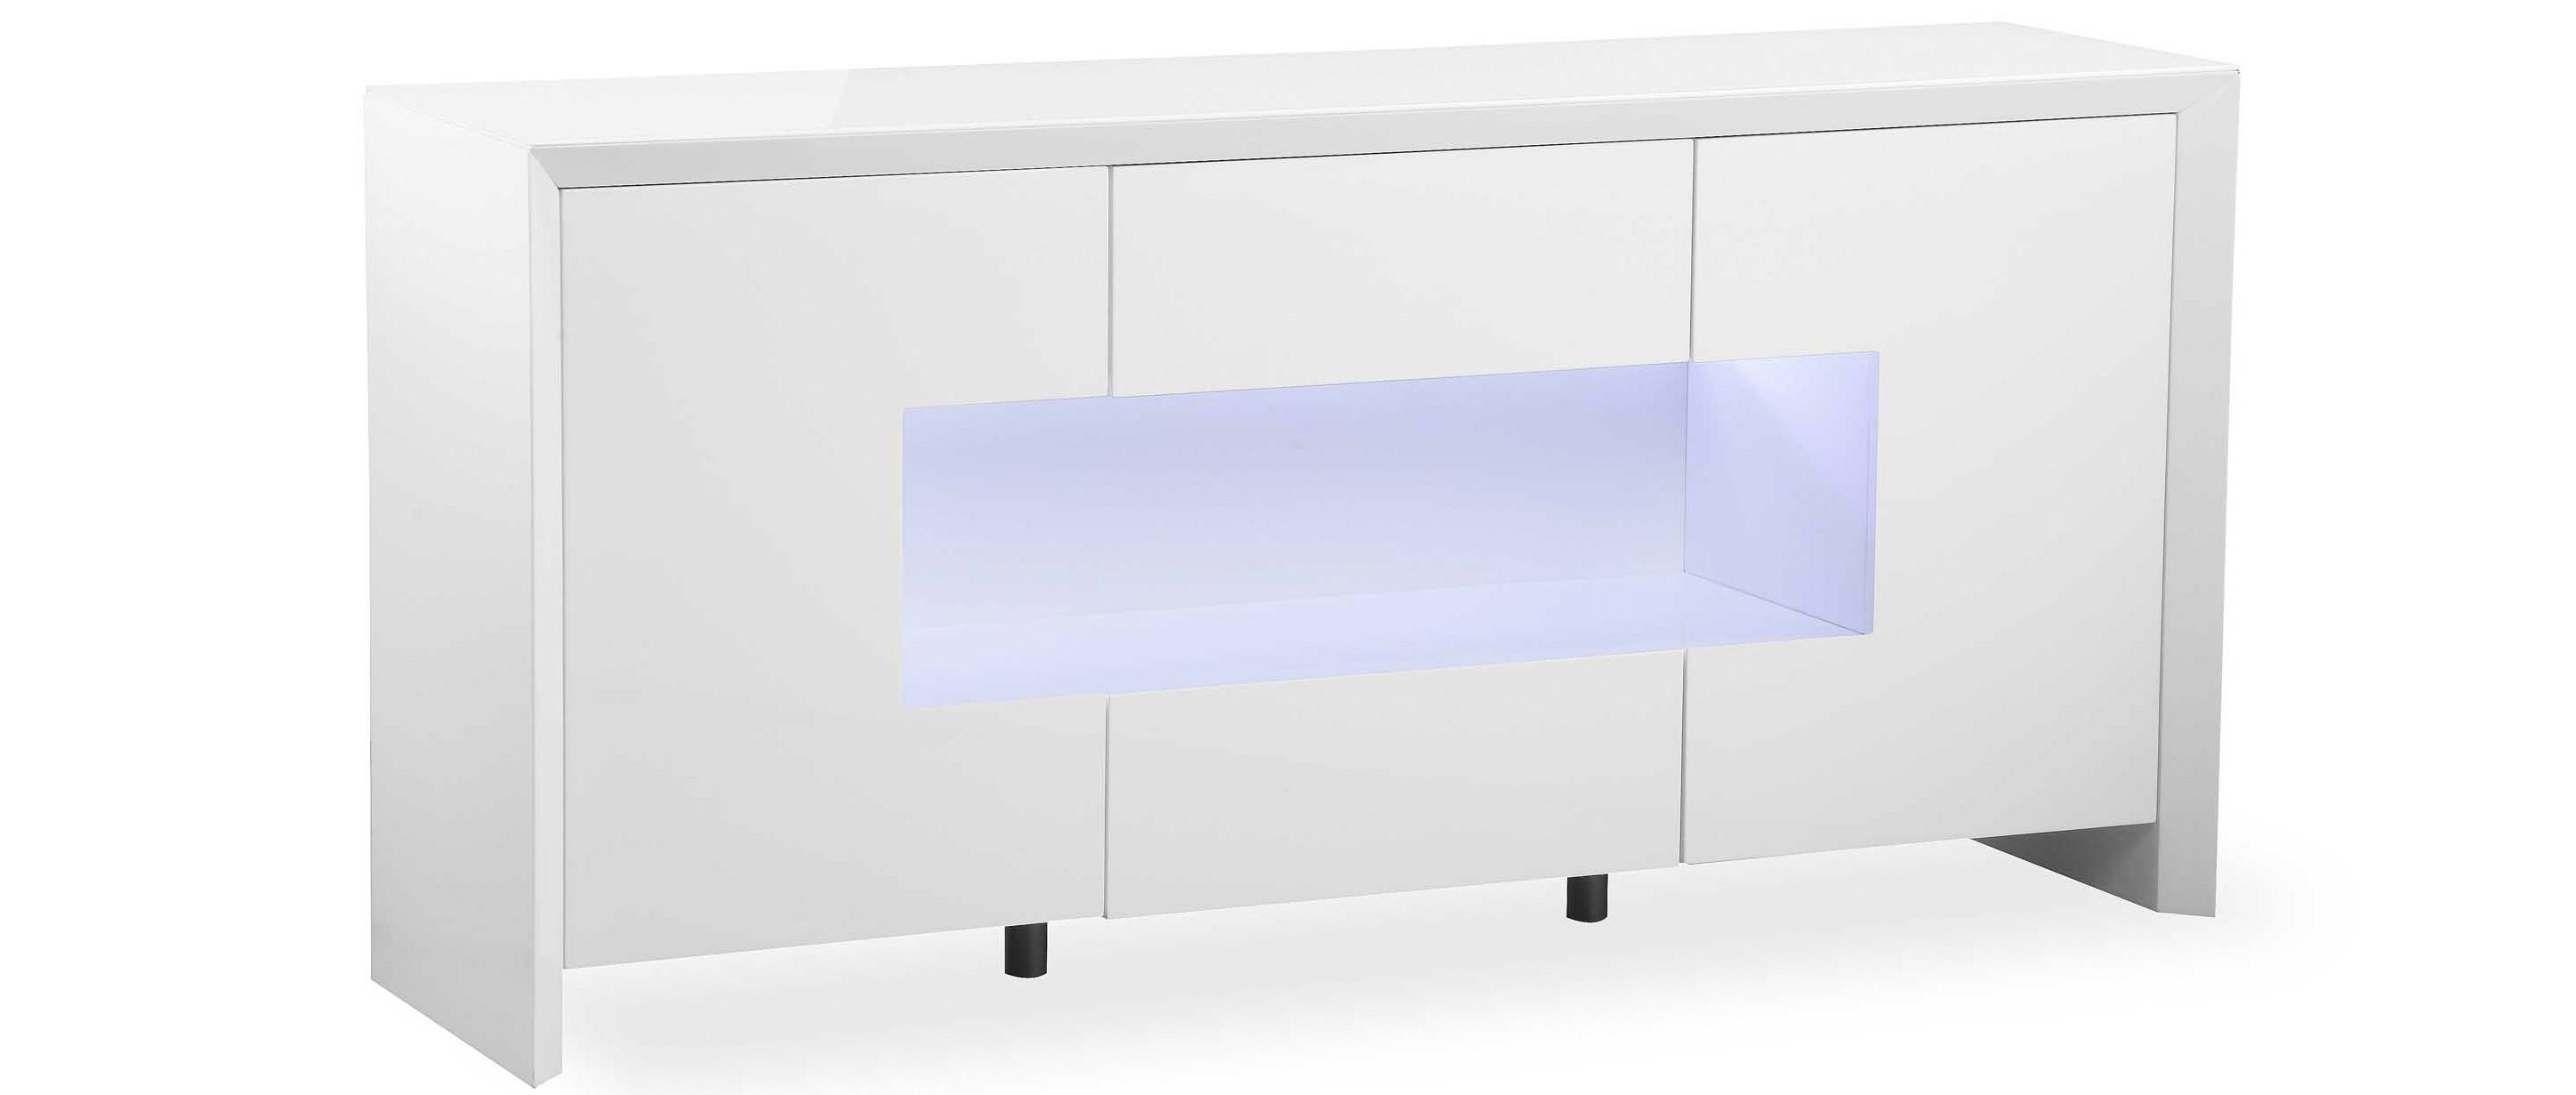 Soho - L.e.d. Display Sideboard - White High Gloss within High Gloss Sideboards (Image 28 of 30)